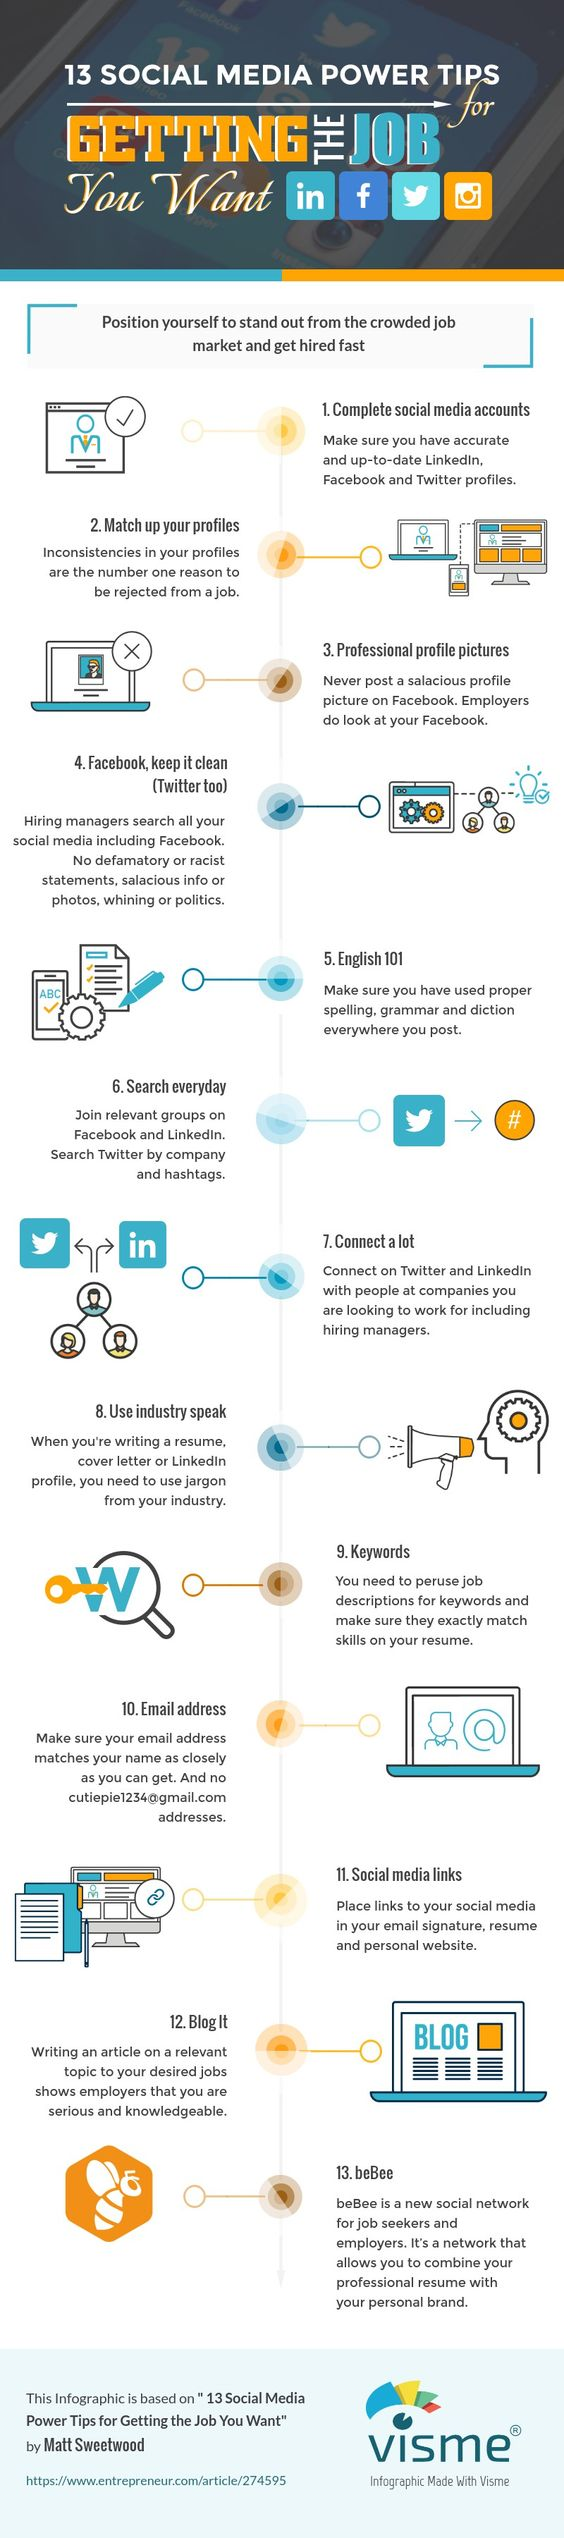 13 Social Media Power Tips To Get The Job You Want [Infographic]